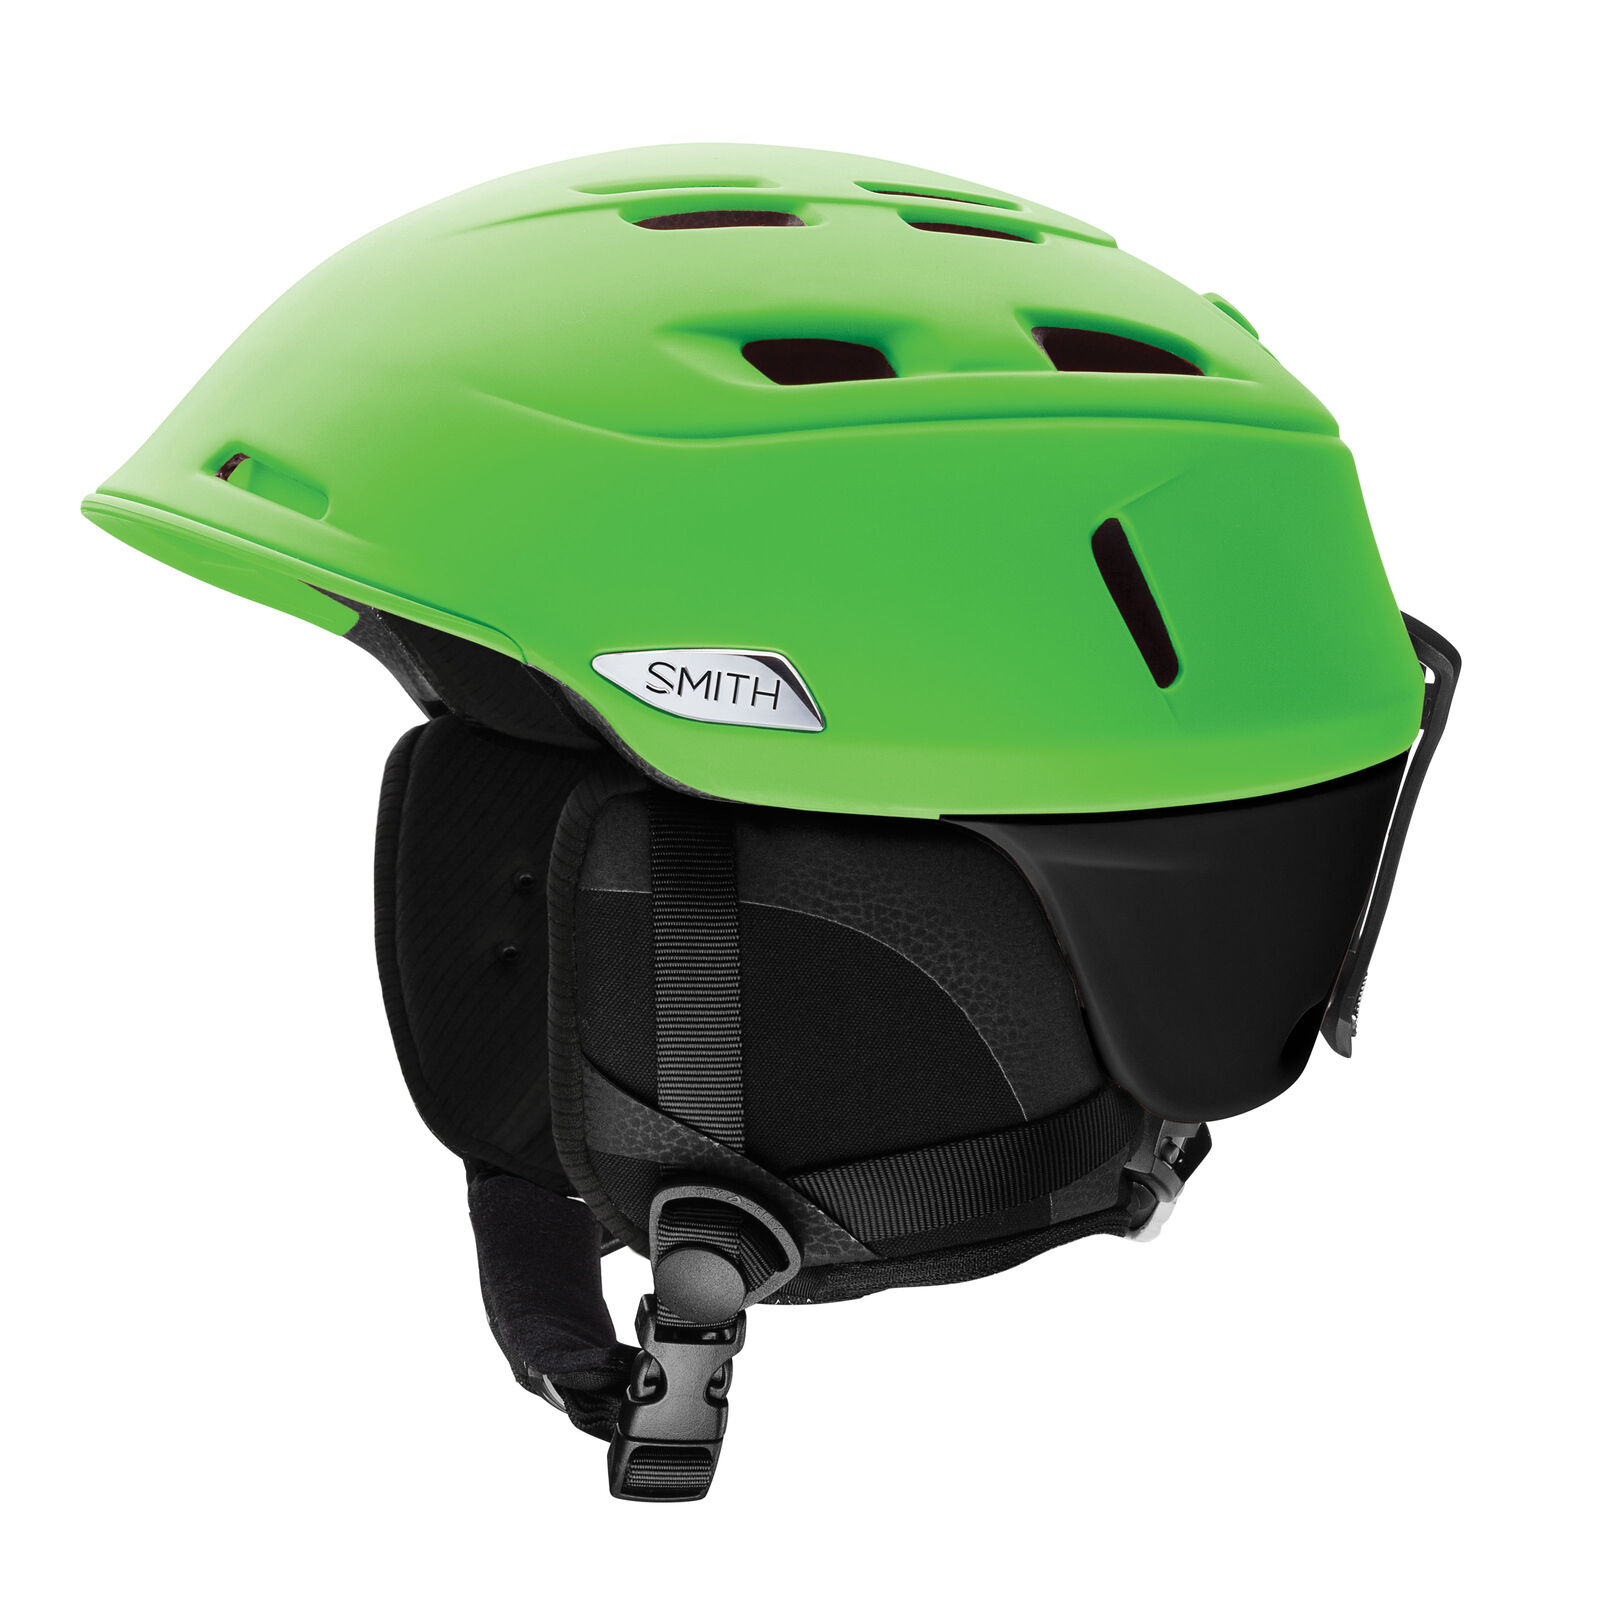 Smith Skihelm Snowboardhelm CAMBER hellgreen leicht Unifarben   quick answers